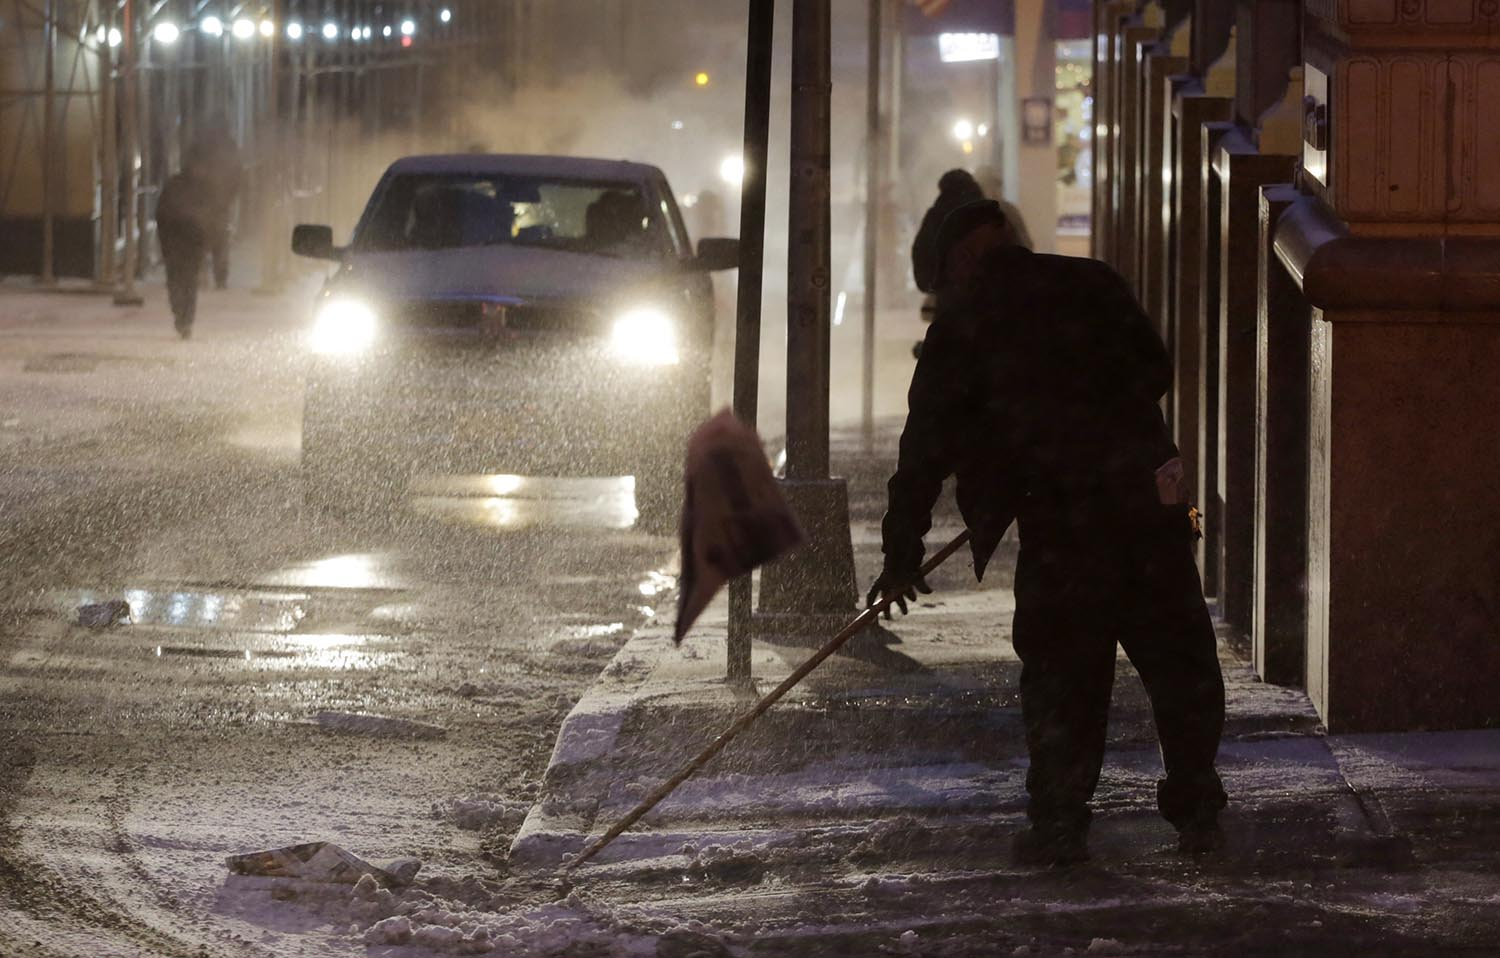 <div class='meta'><div class='origin-logo' data-origin='AP'></div><span class='caption-text' data-credit='AP Photo/Mark Lennihan'>A man clears snow from a sidewalk, Thursday, Jan. 4, 2018, in New York.</span></div>